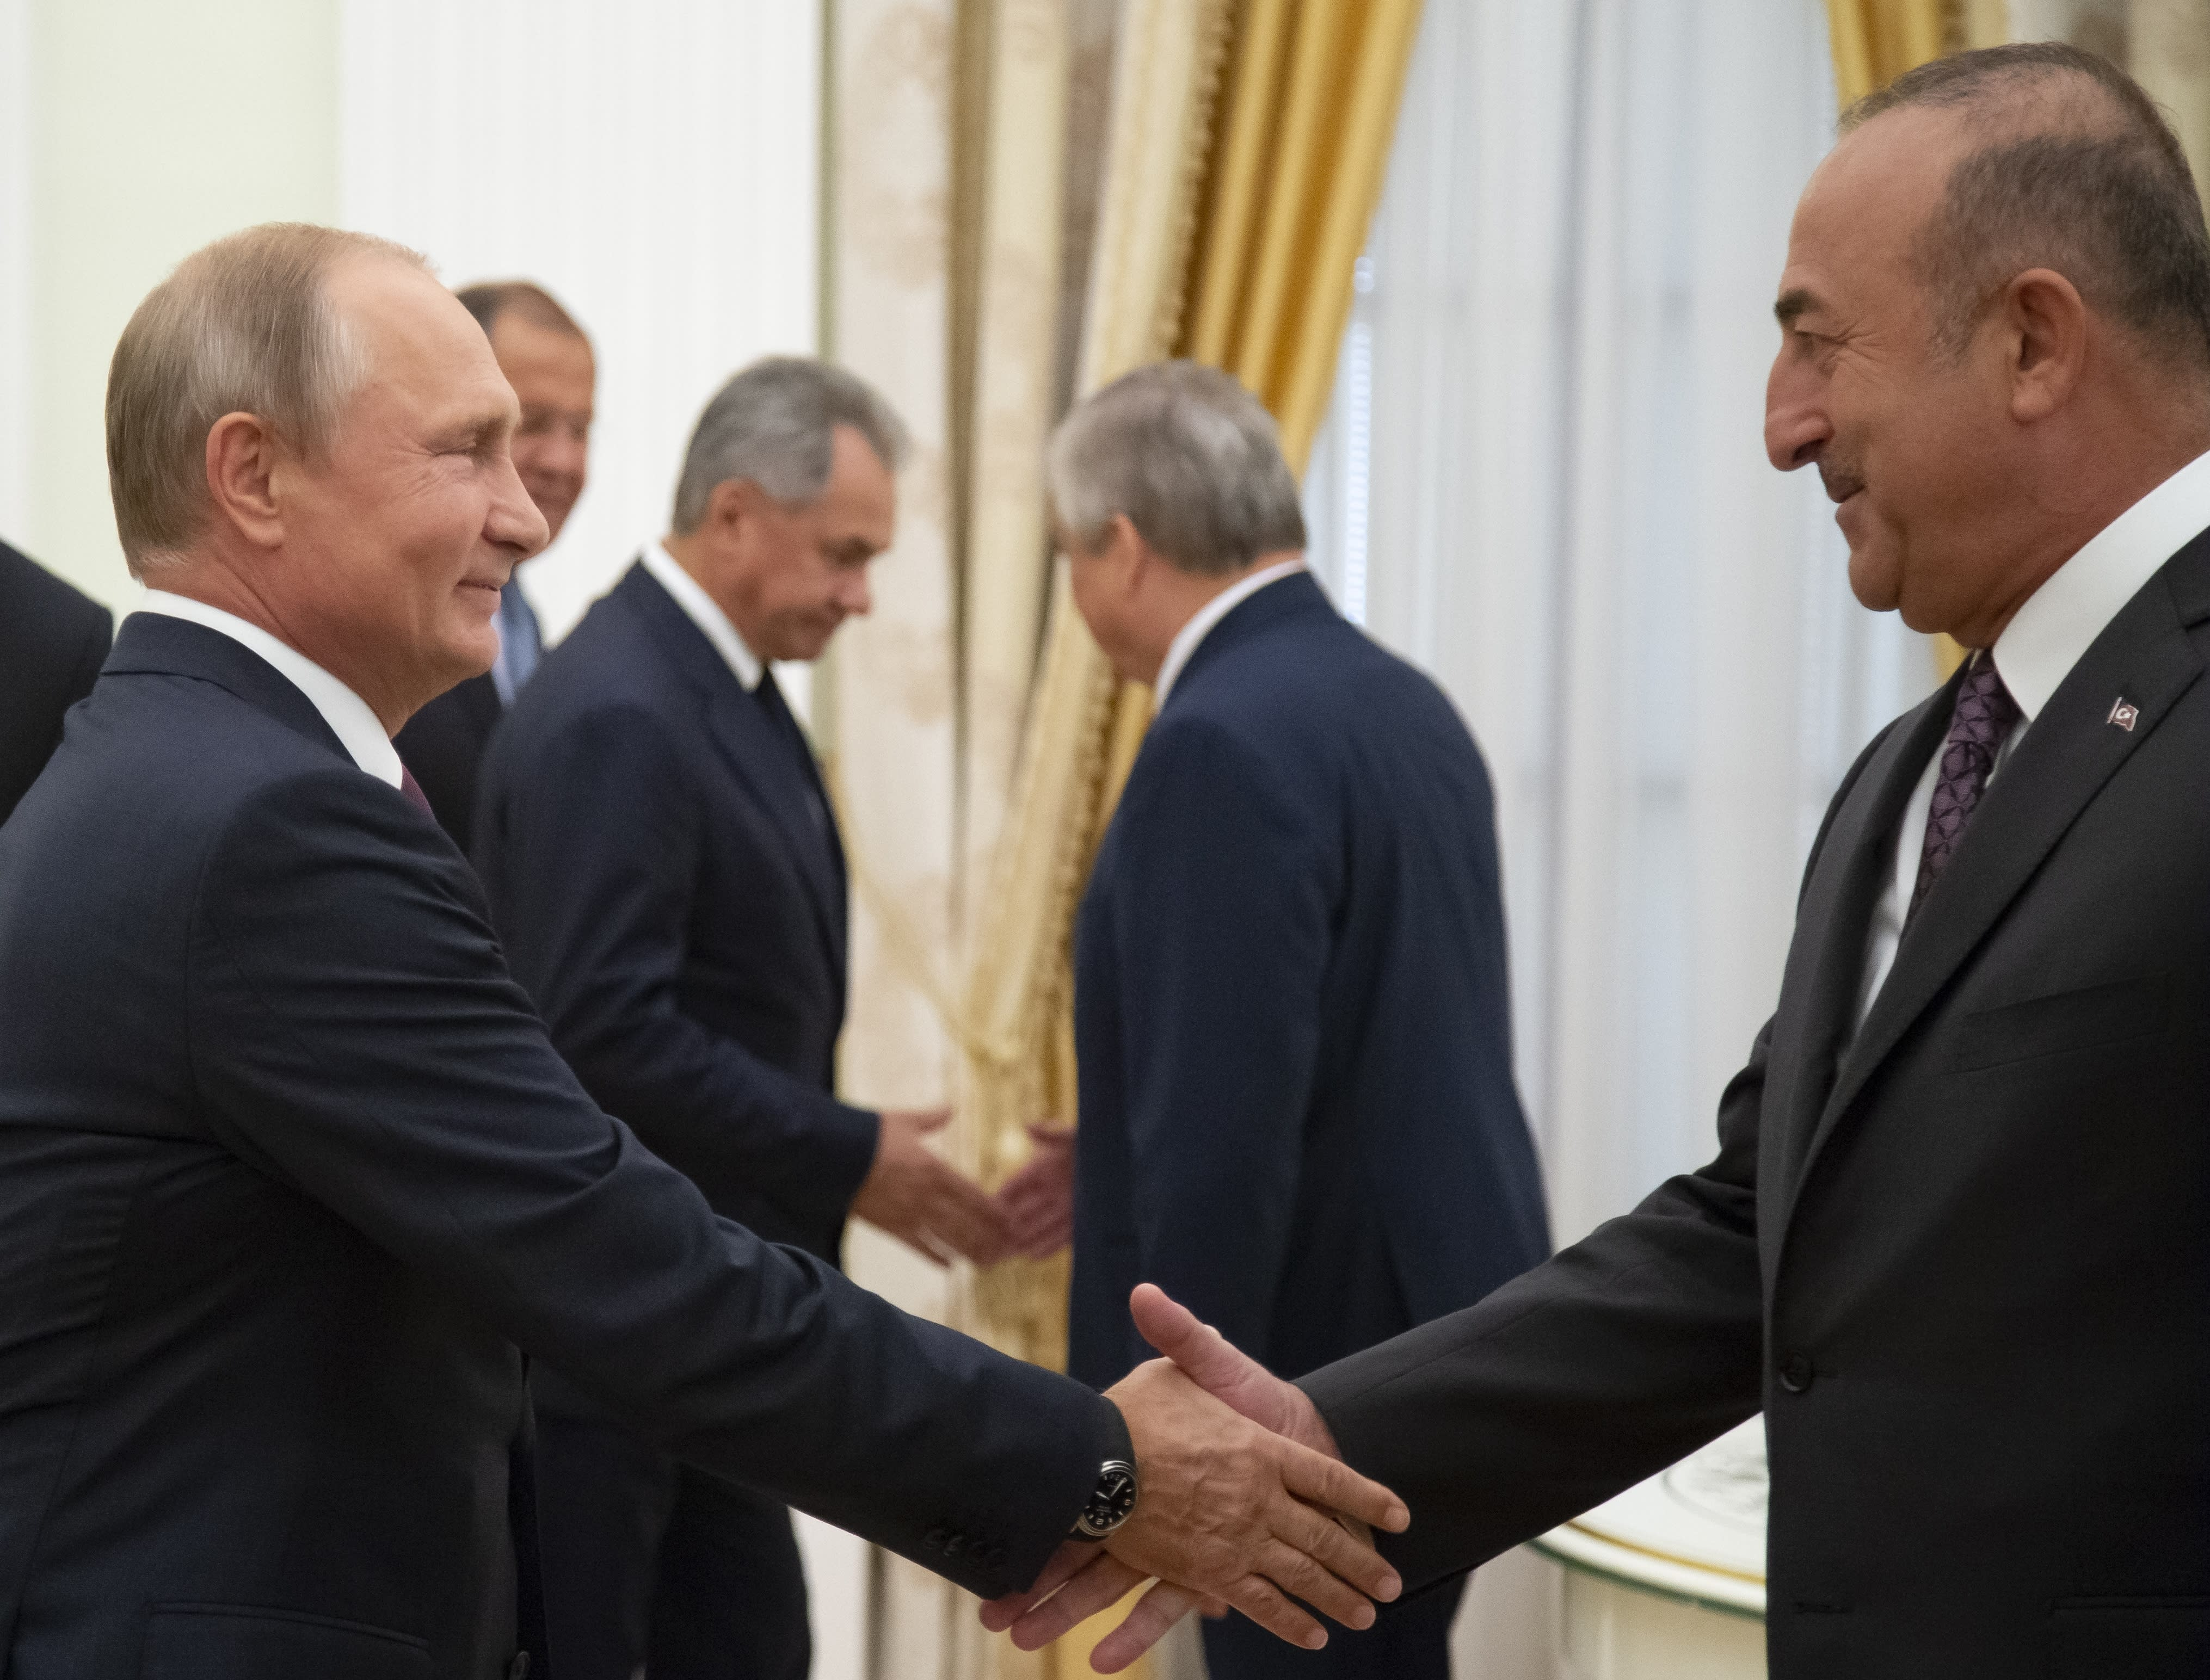 Russian President Vladimir Putin, left, shakes hands with Turkish Foreign Minister Mevlut Cavusoglu during their meeting in the Kremlin in Moscow, Russia, Friday, Aug. 24, 2018. Turkey's Foreign Minister on Friday warned against a possible Syrian government offensive on the last remaining stronghold of opposition against President Bashar Assad, while Russia indicated that it's losing its patience with the rebels. (AP Photo/Alexander Zemlianichenko, Pool)